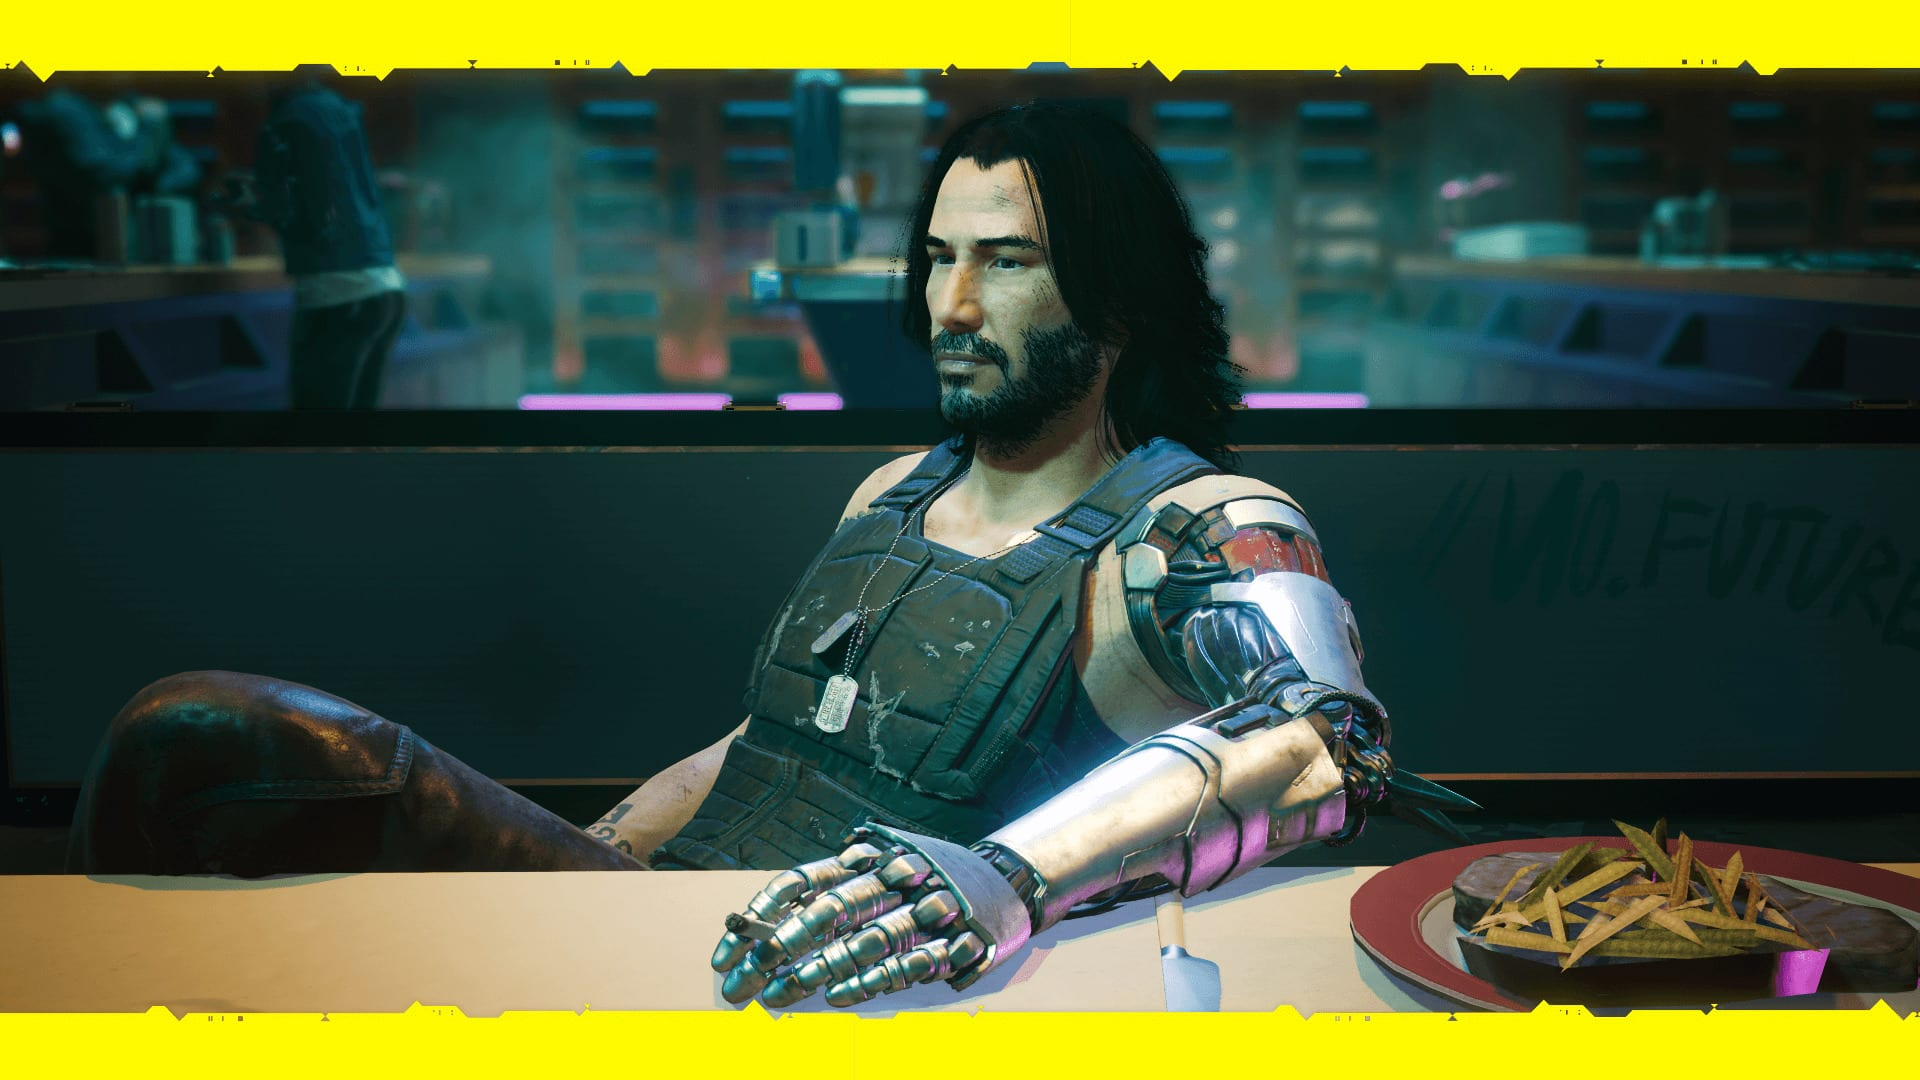 Johnny Silverhand, played by Keanu Reeves, in Cyberpunk 2077